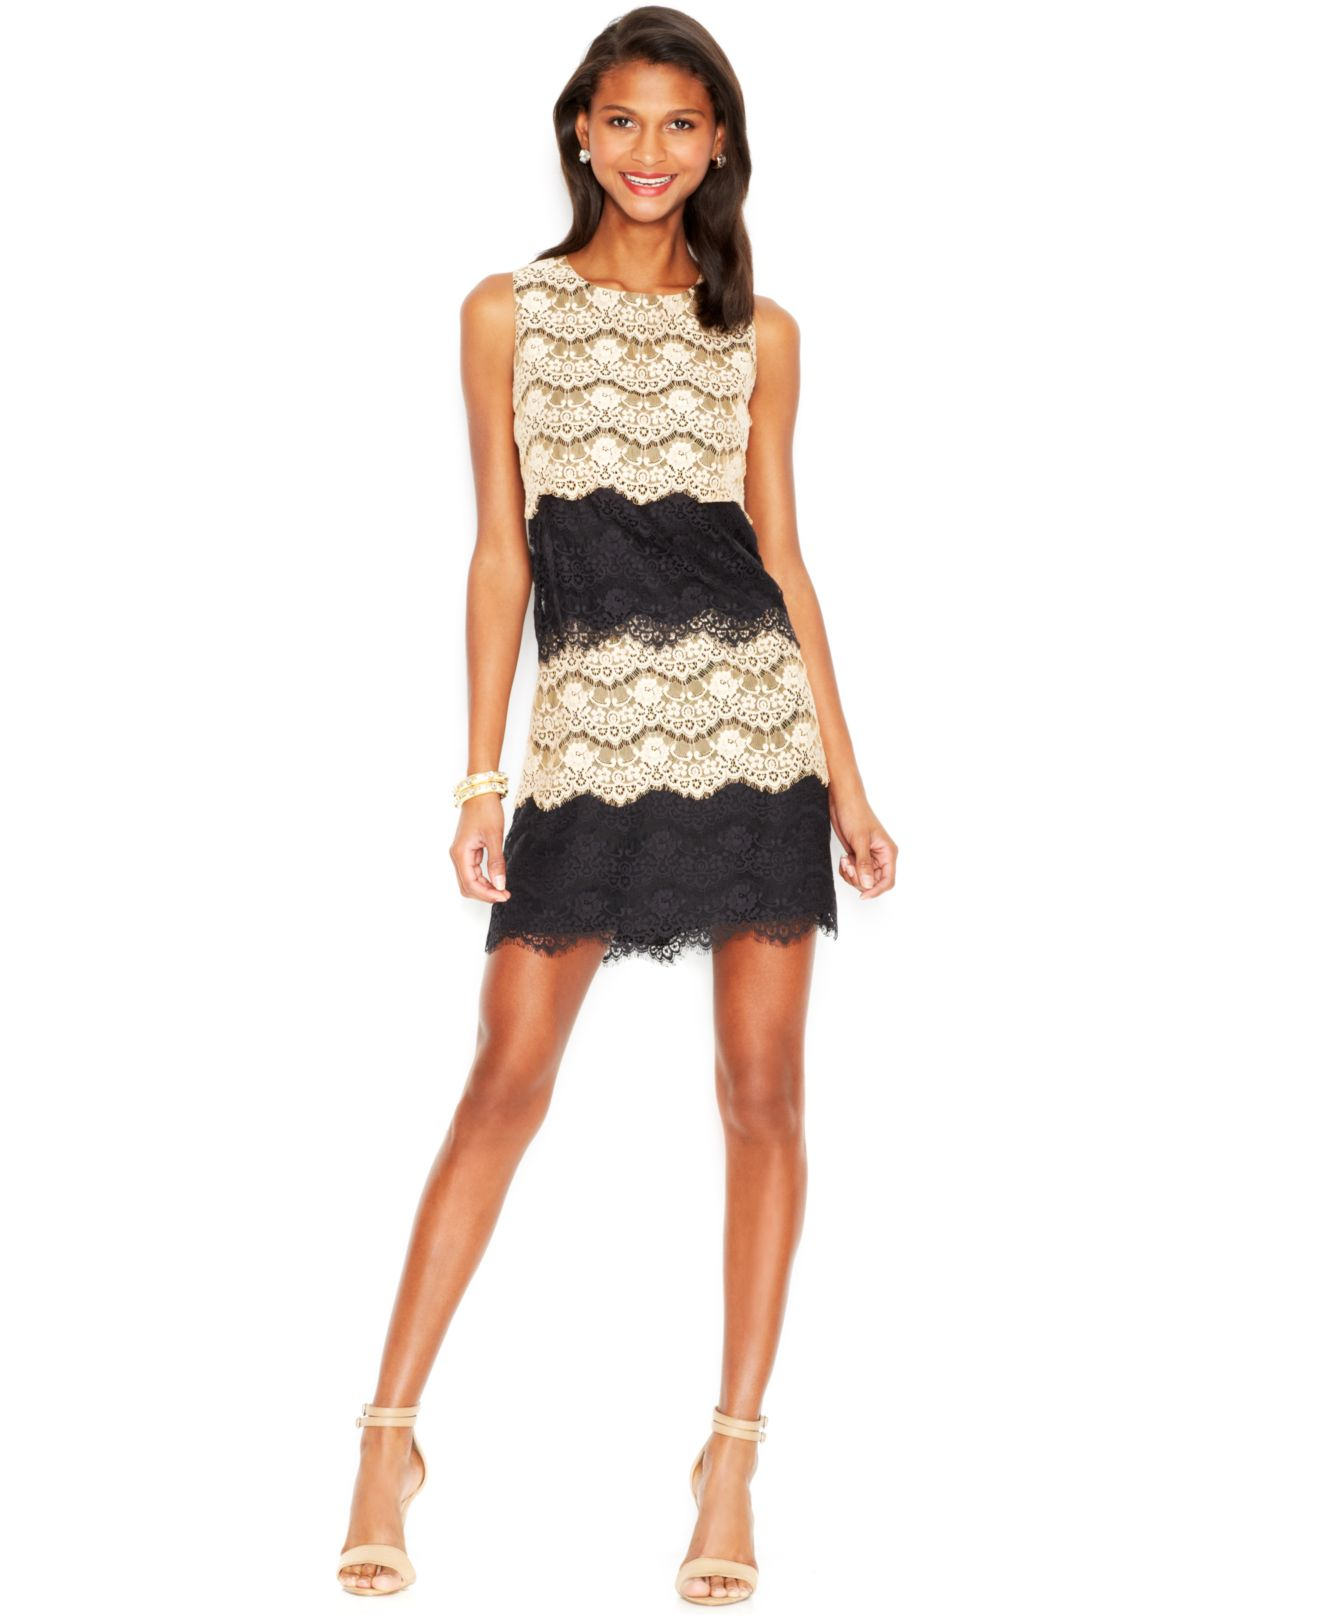 Lyst - Jessica Simpson Tiered Lace Cocktail Dress in Natural